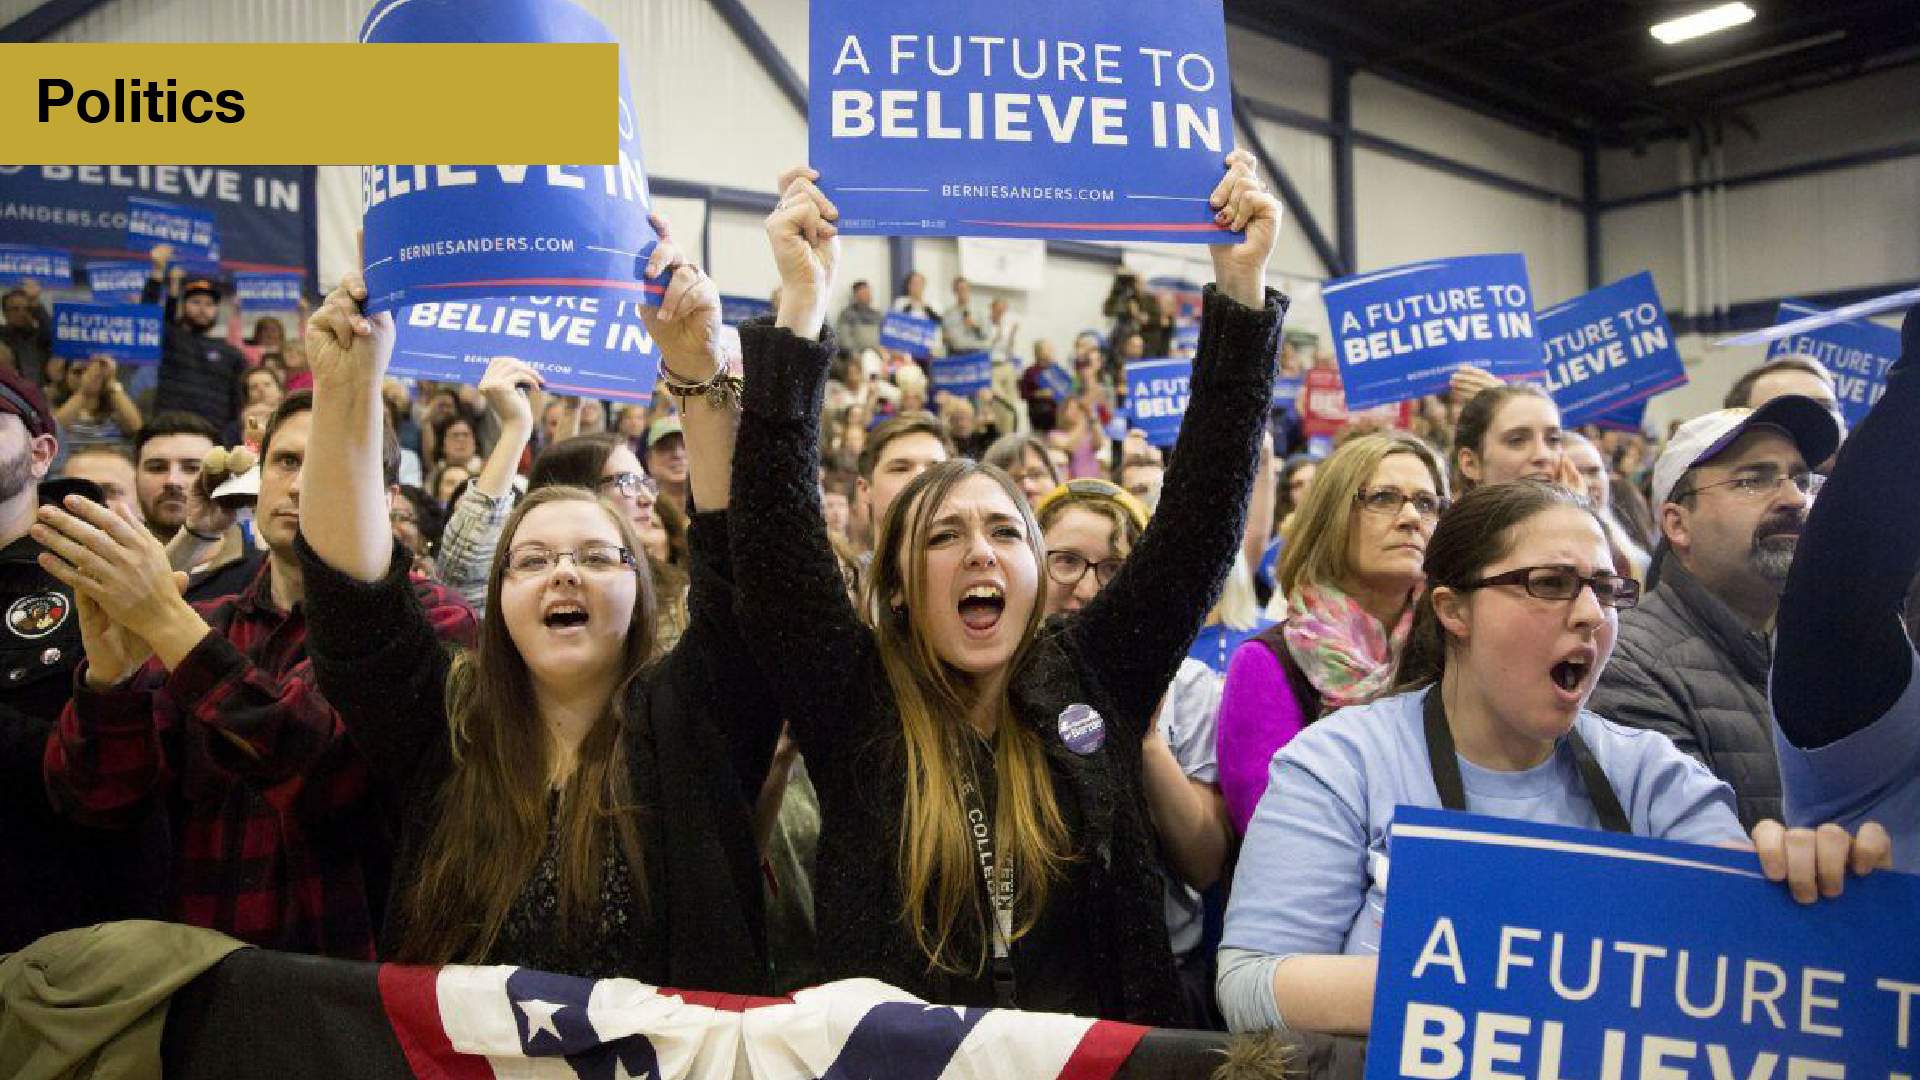 Note to Young Progressives - You can't always get what you want—but there's a surefire way to get nothing